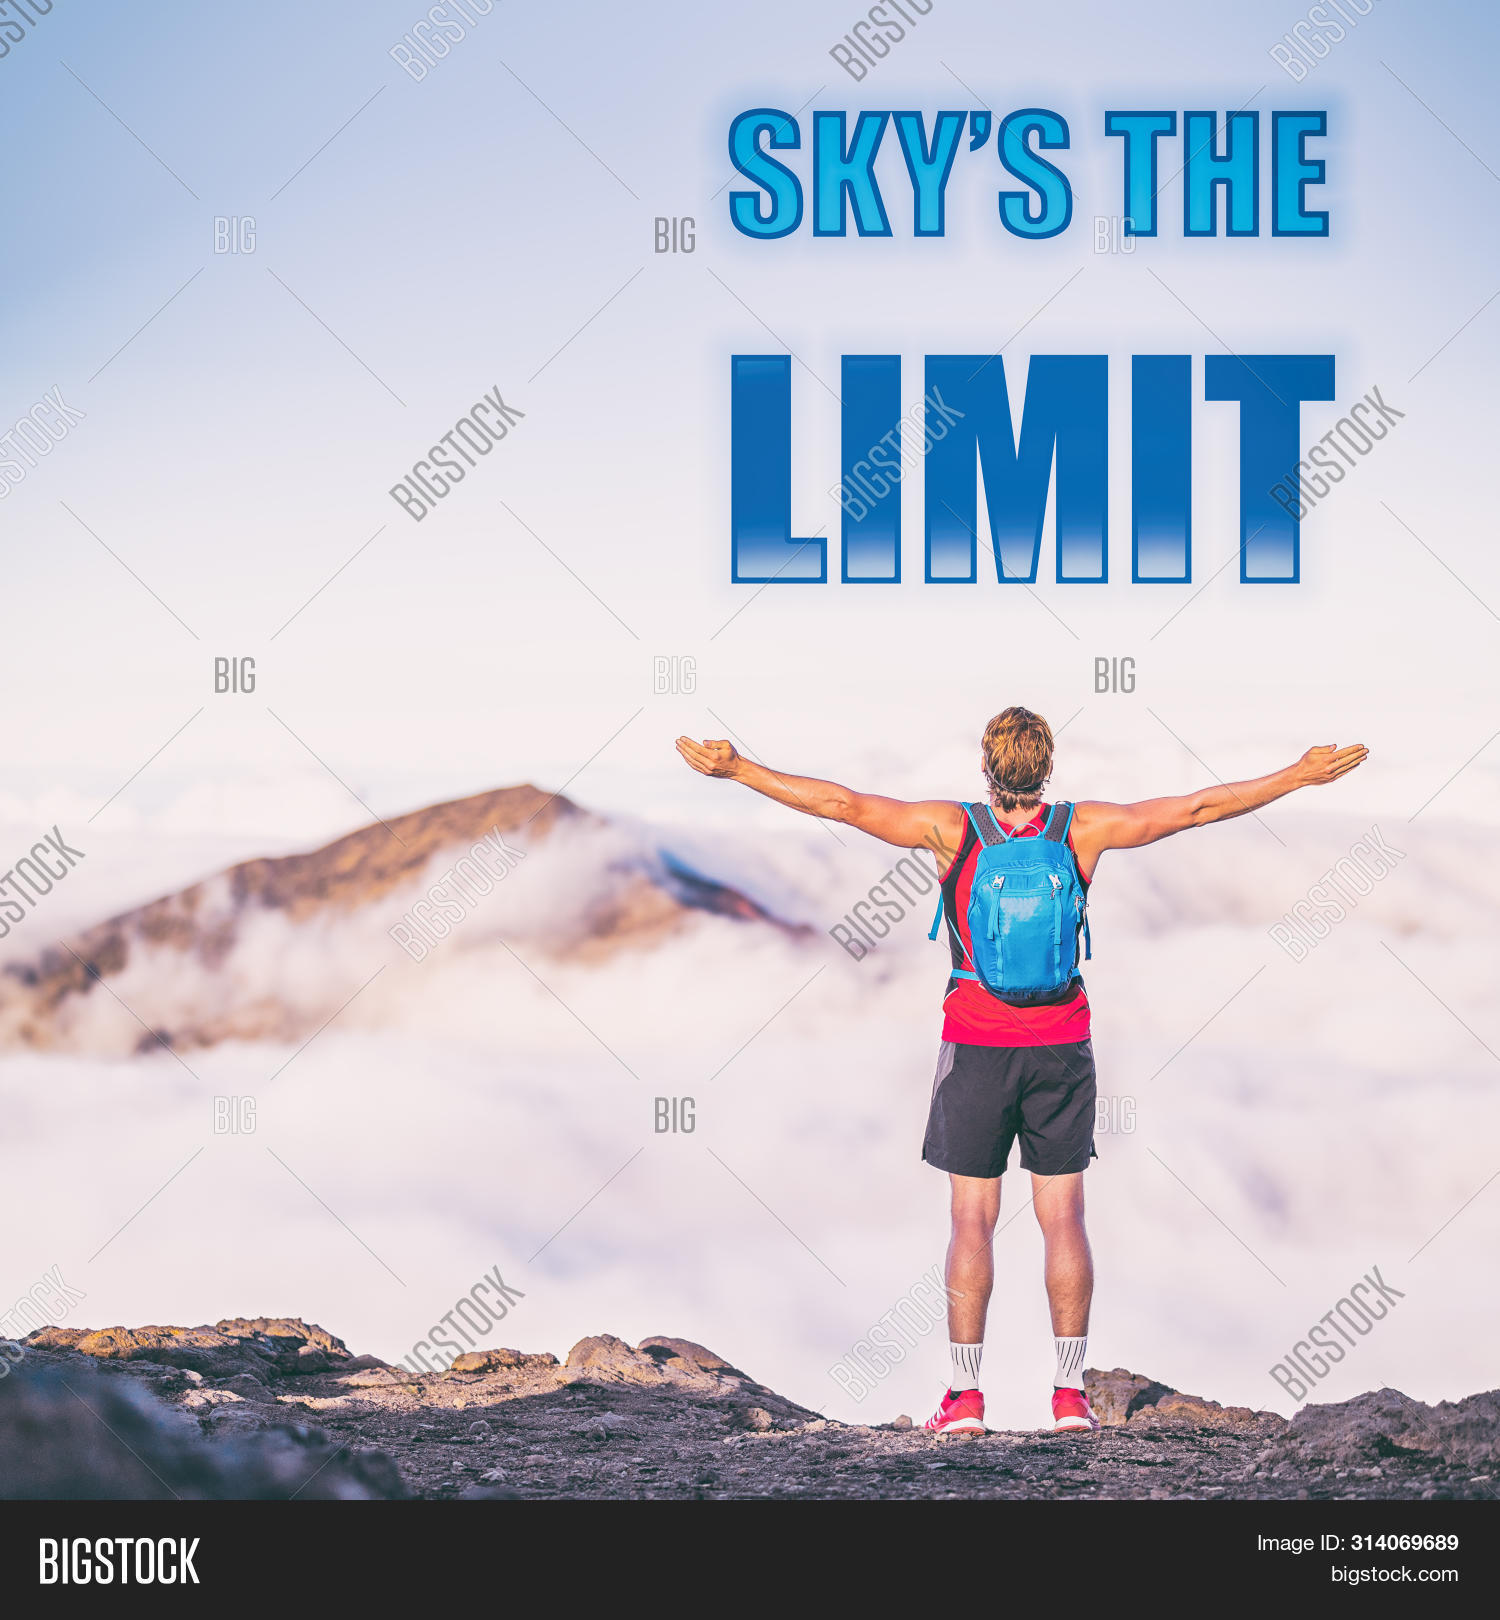 sky s limit motivation image photo trial bigstock